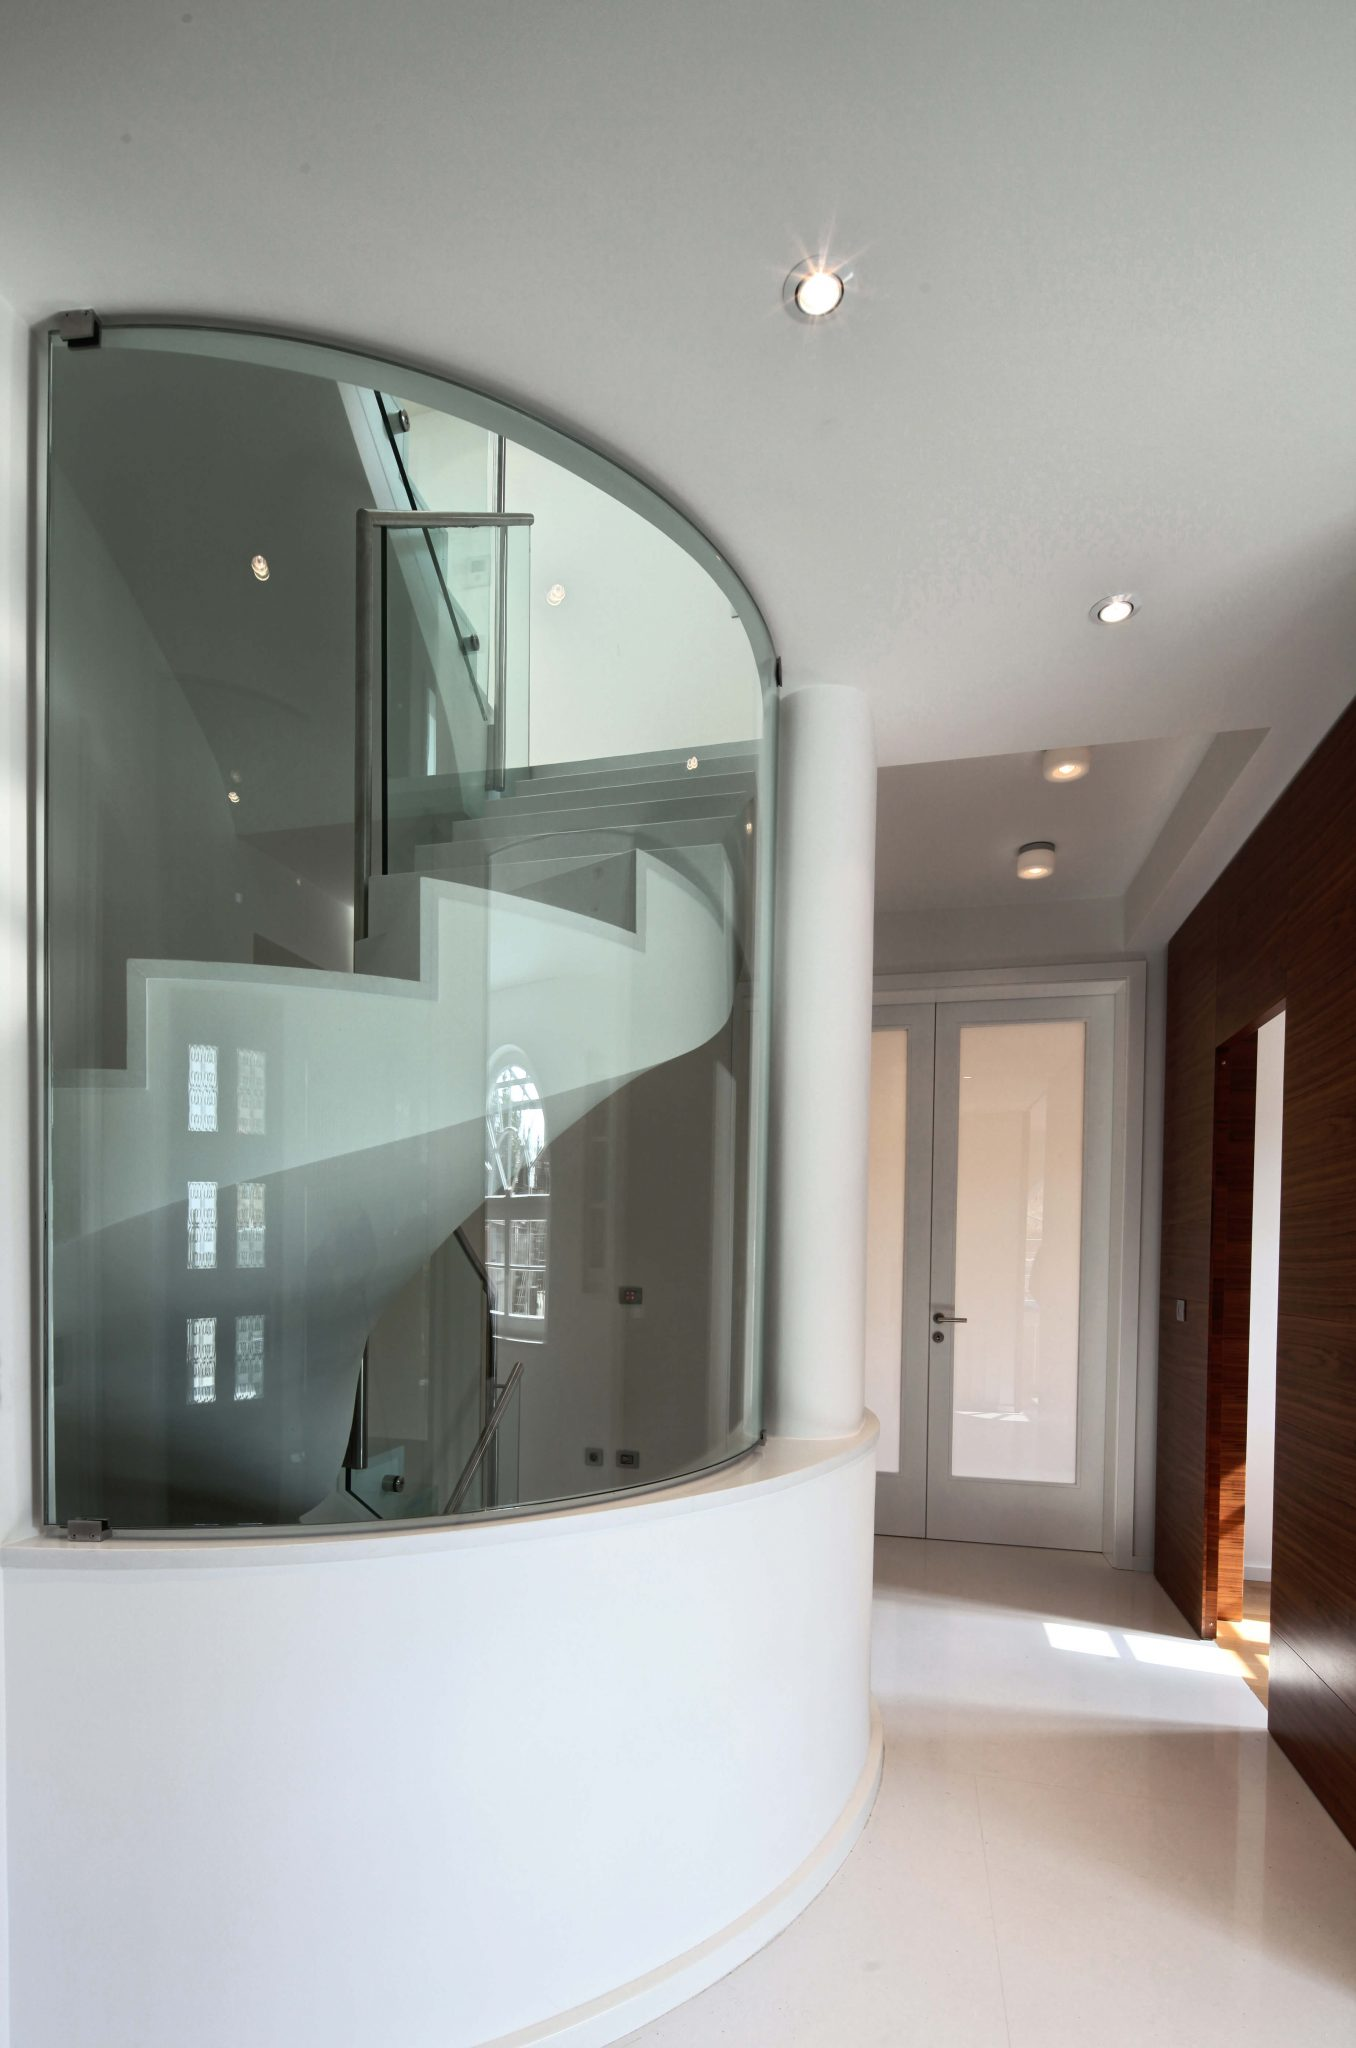 Spiral staircase inside glass stairwell in the middle of large foyer of a luxury home.